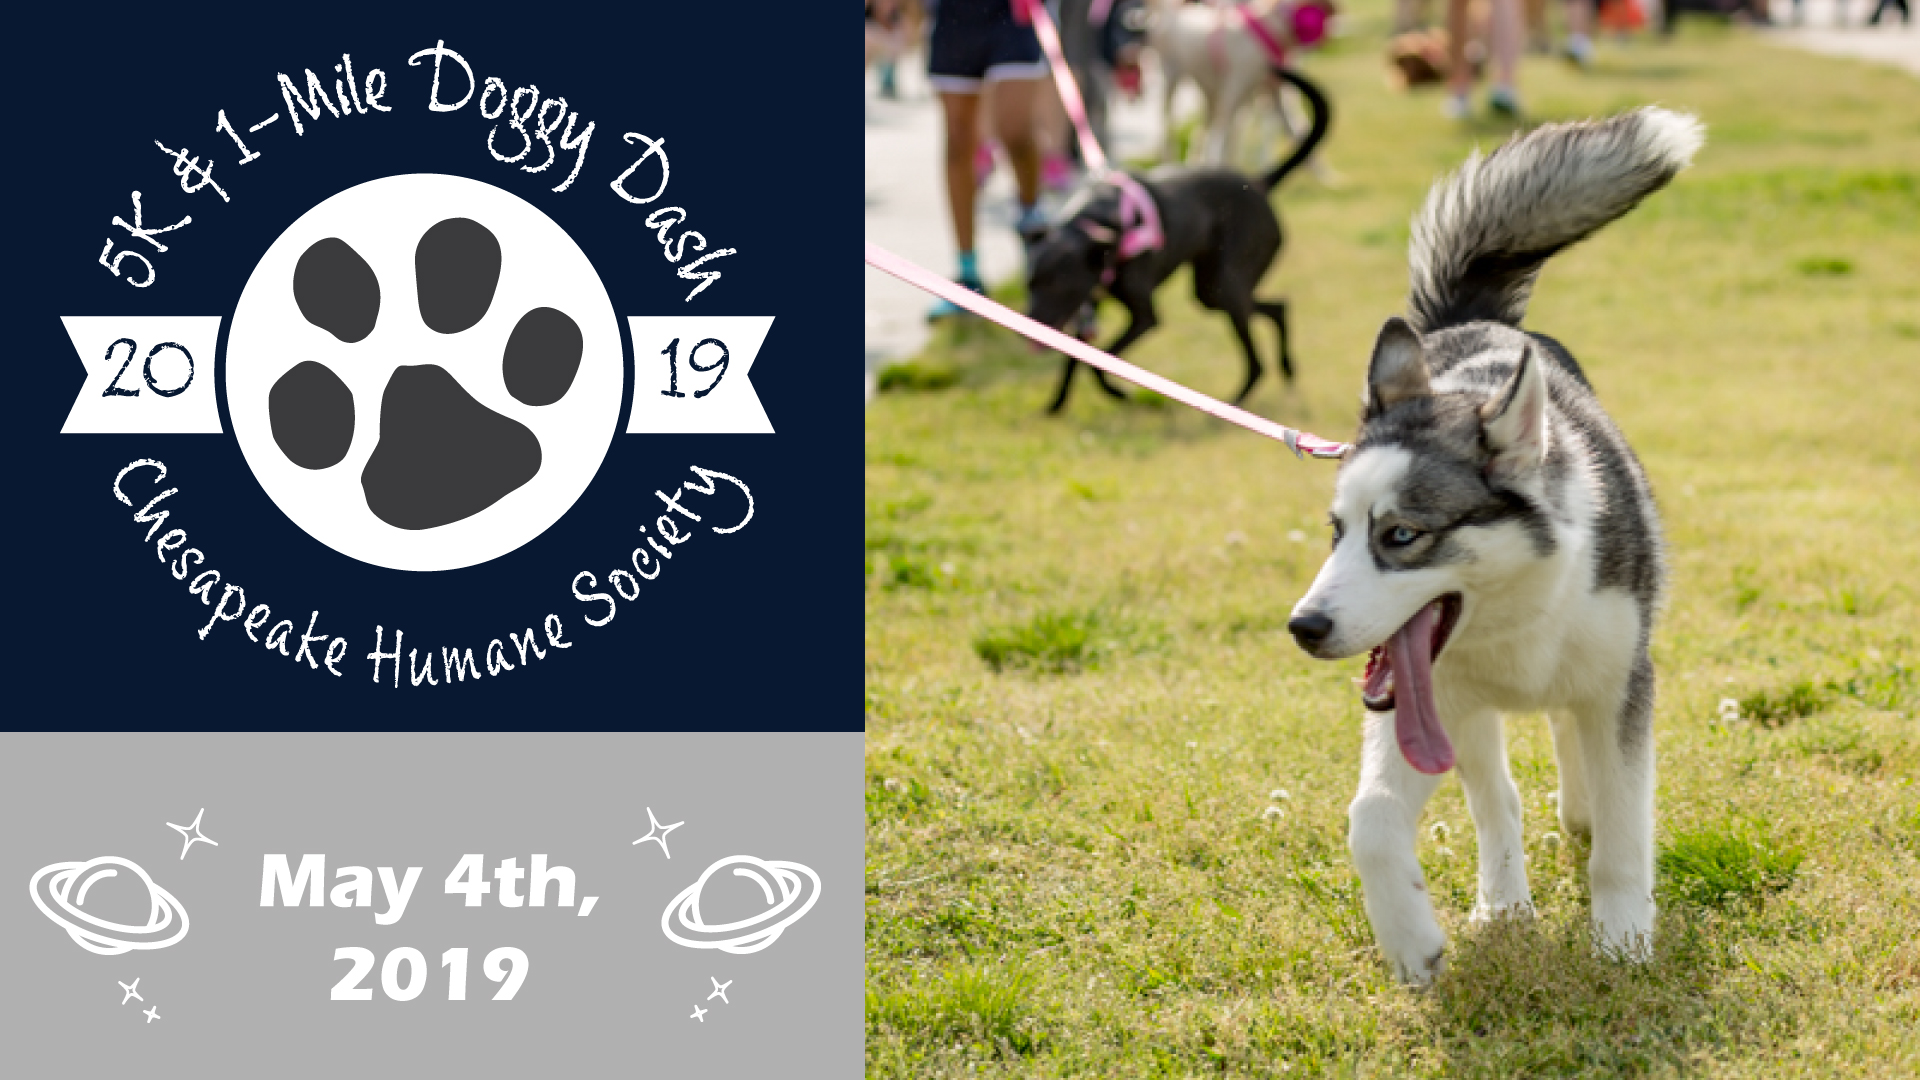 5K Doggy Dash to benefit Chesapeake Humane Society